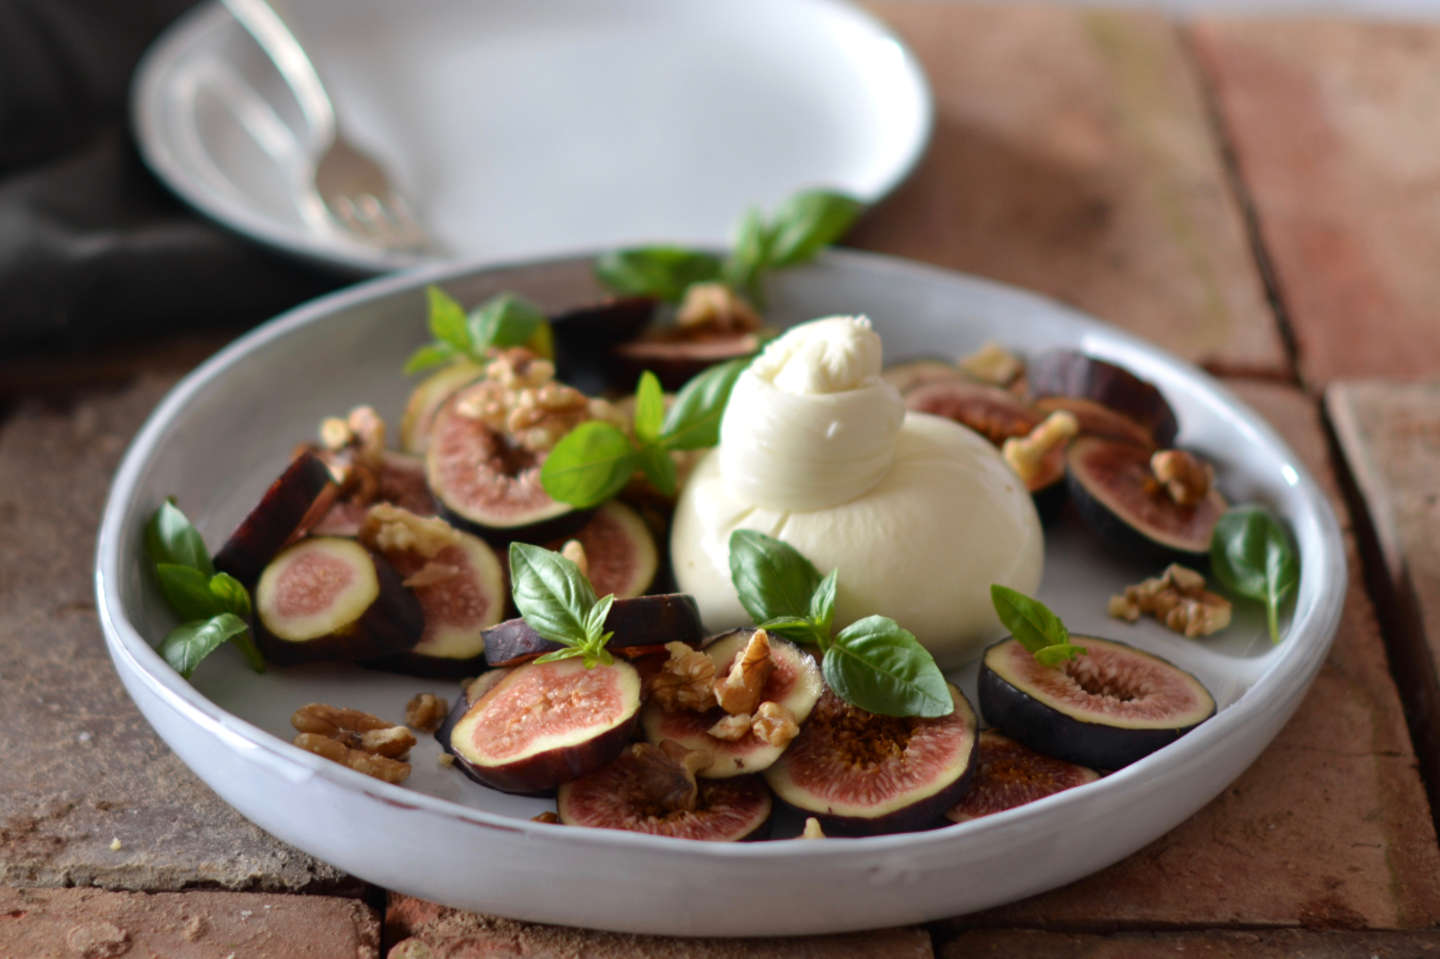 Figs burrata